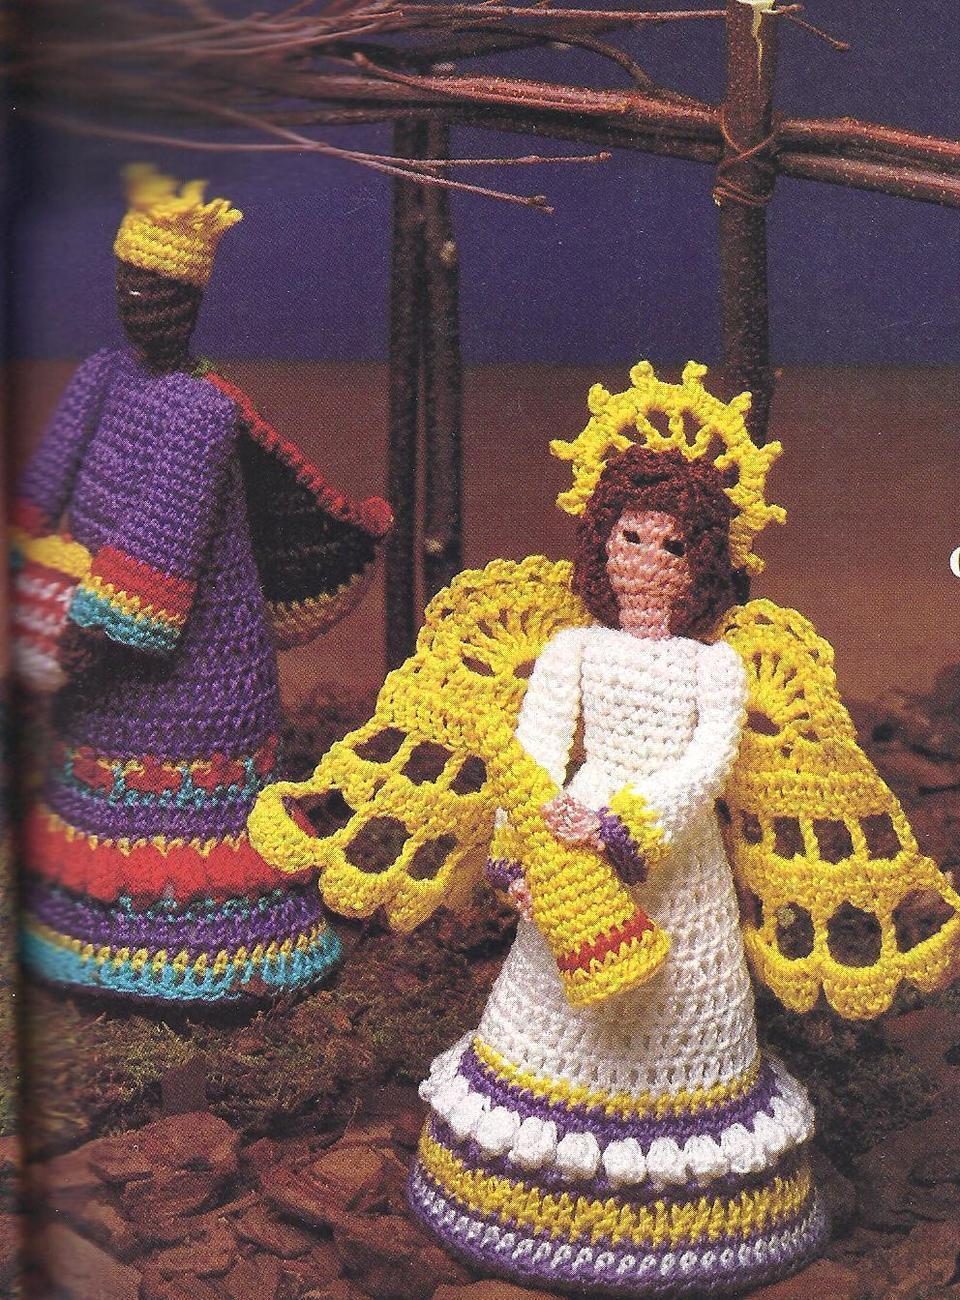 Knitting Patterns Nativity Free : NATIVITY CROCHET PATTERN   Crochet For Beginners